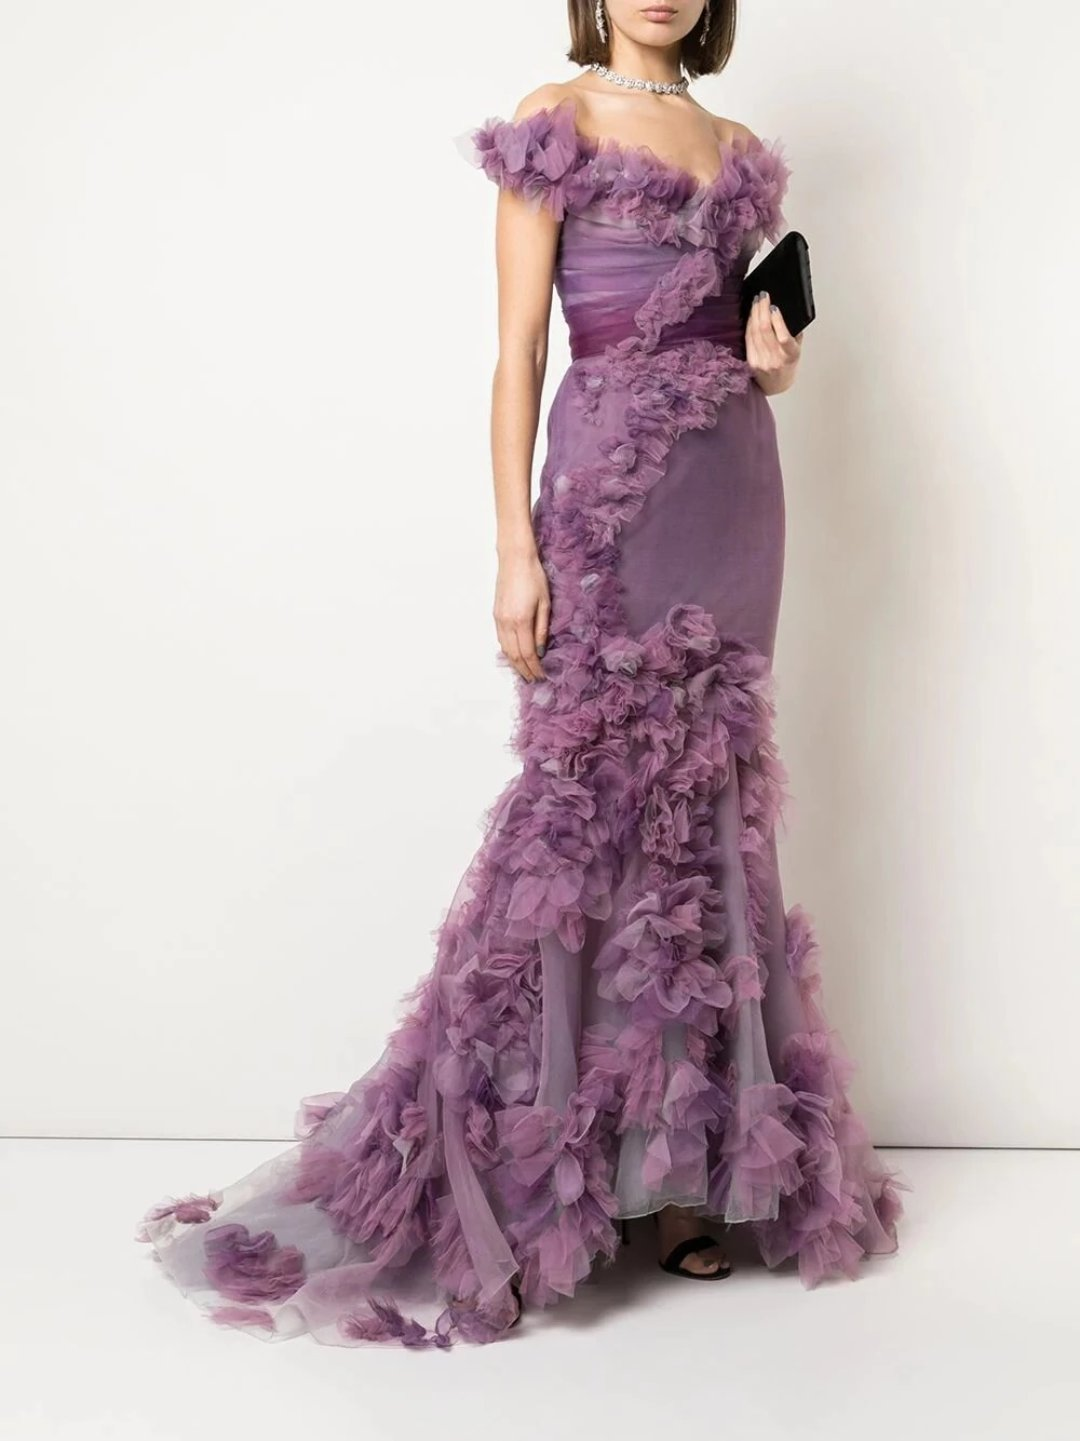 Wisteria Painted Ombre Organza Gown